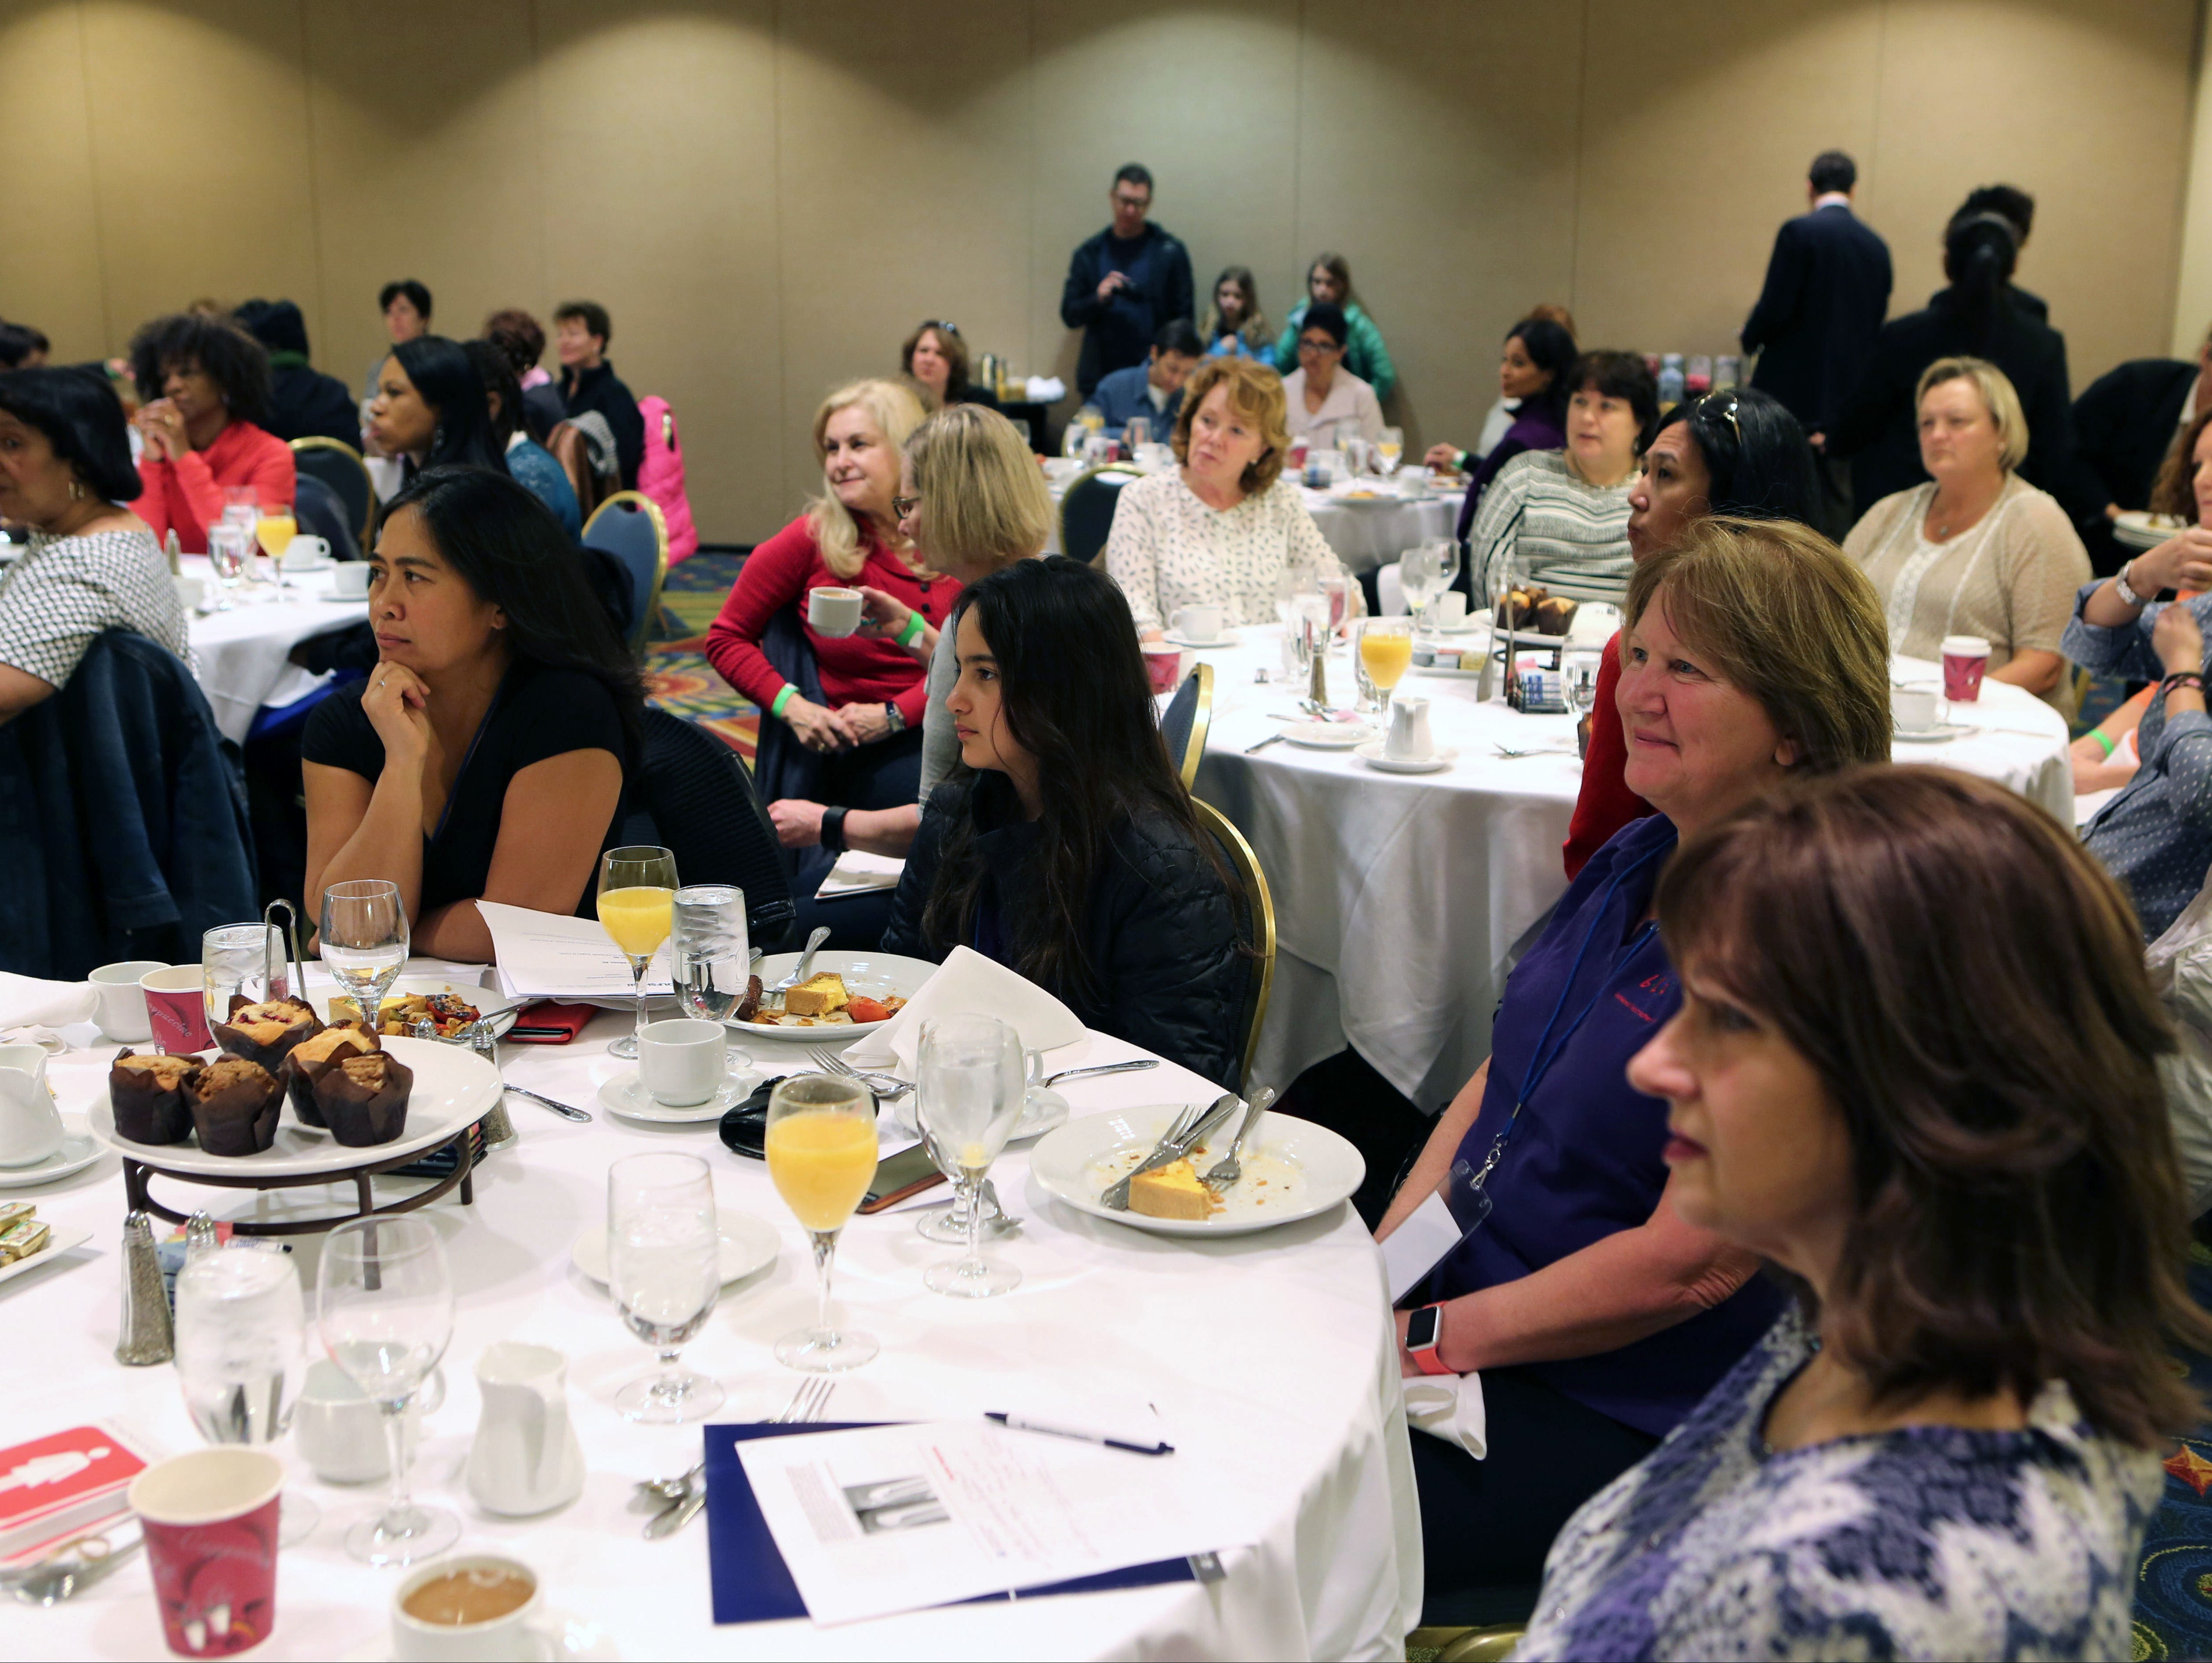 Attendees listen to speakers during the Women's Networking breakfast at the lohud.com Golf Show at the Westchester Marriott in Tarrytown, March 12, 2016. The show continues Sunday, March 13, 2016 from 9:00 a.m. till 4:00 p.m.